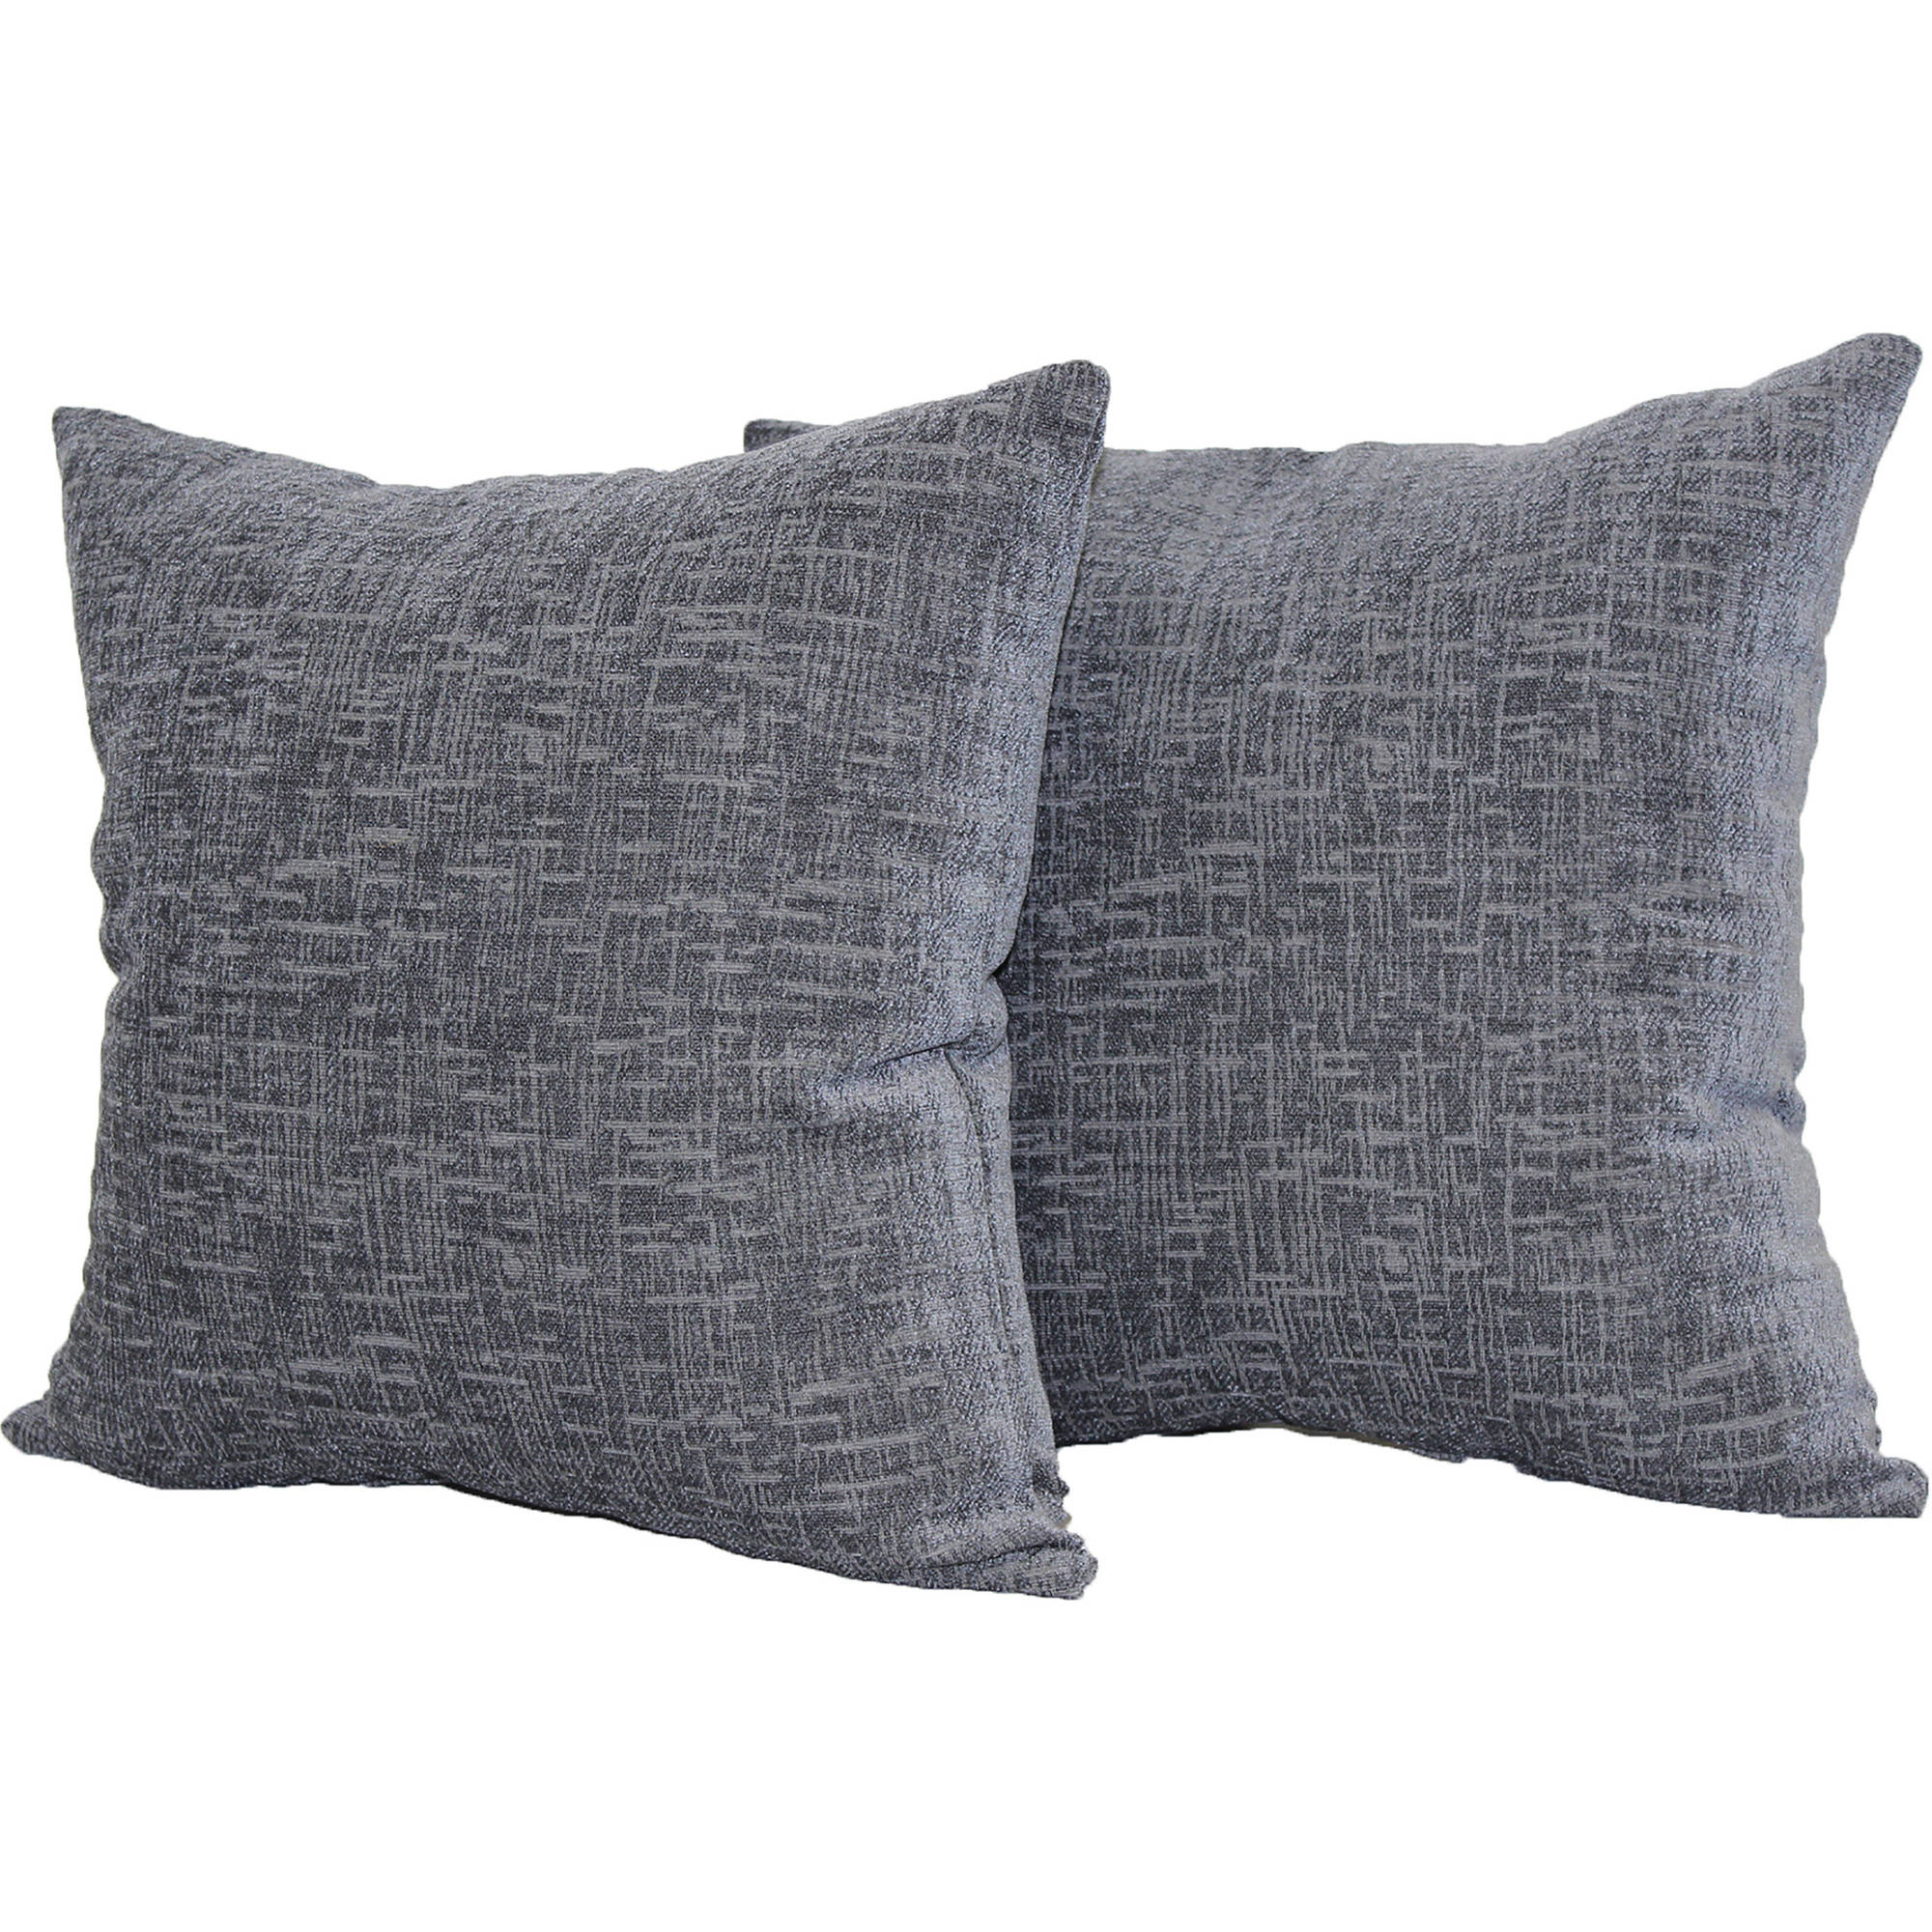 Mainstays Decorative Chenille Pillow, Two-Pack, Gray